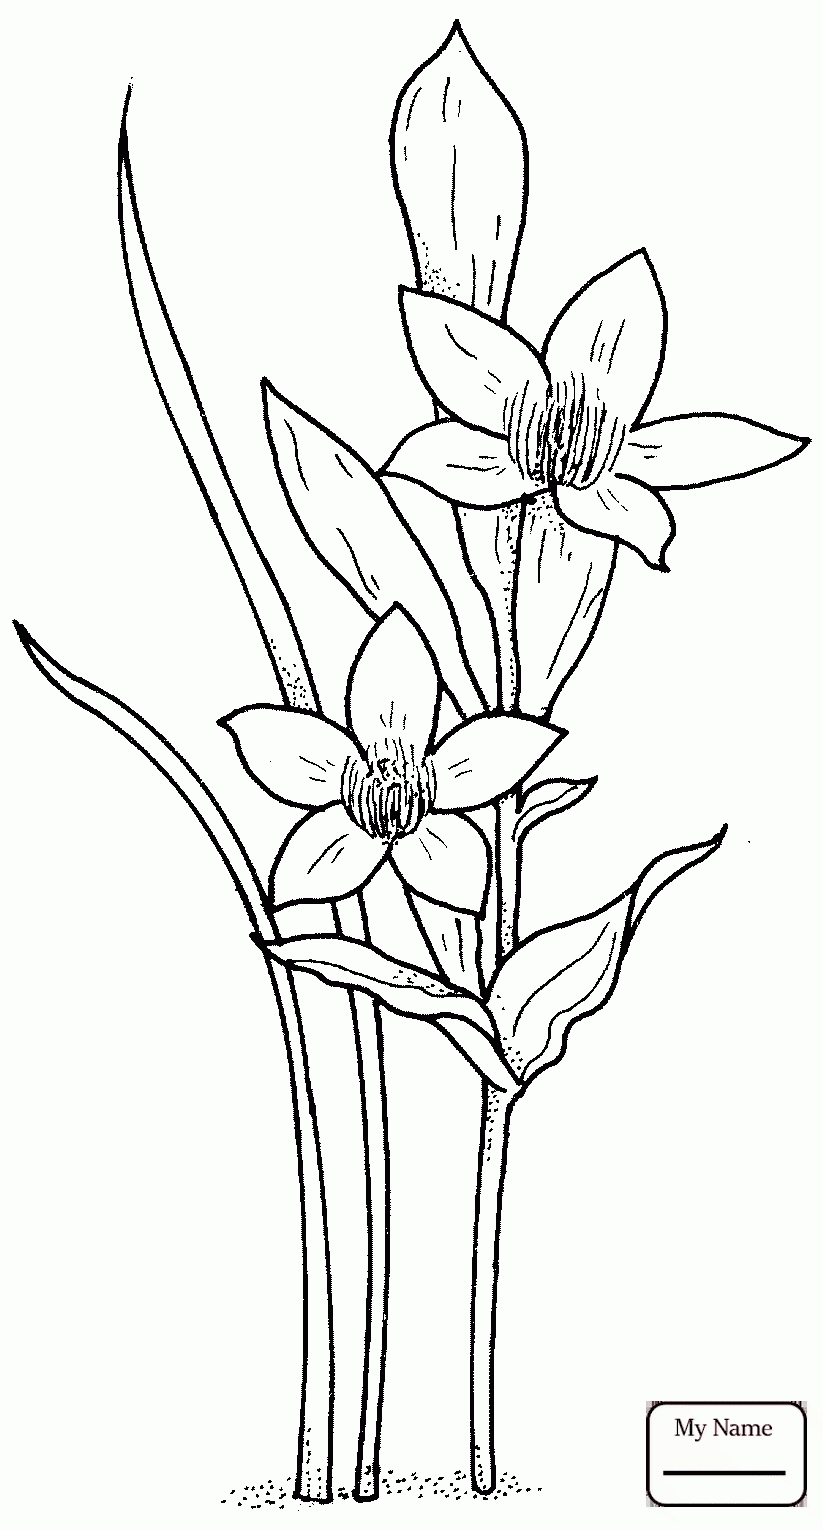 New Daffodil Coloring Pages Design Collection Of Daffodil Coloring Pages Gallery